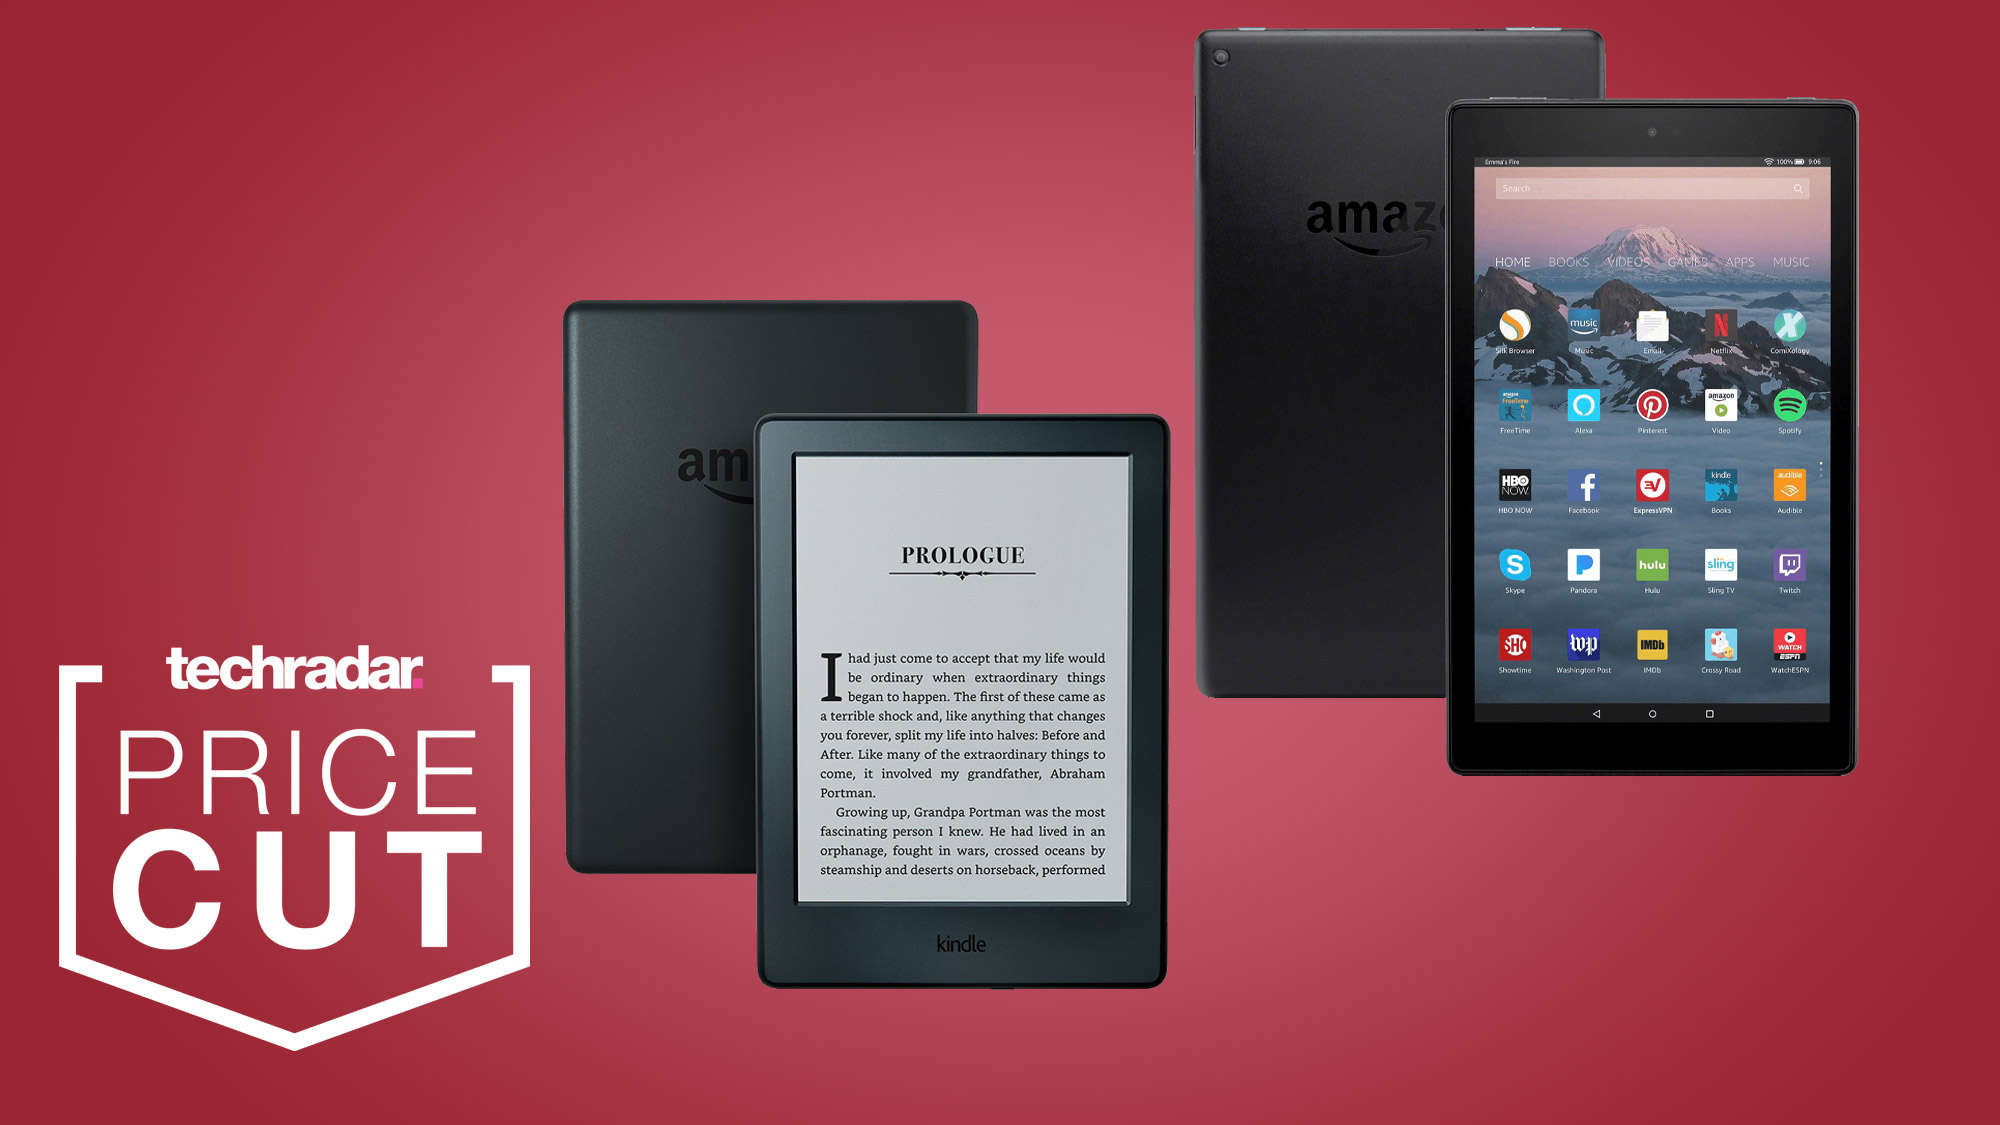 Cheap Tablet Deals At Best Buy Get The Amazon Fire Tablet On Sale For 39 99 Techradar